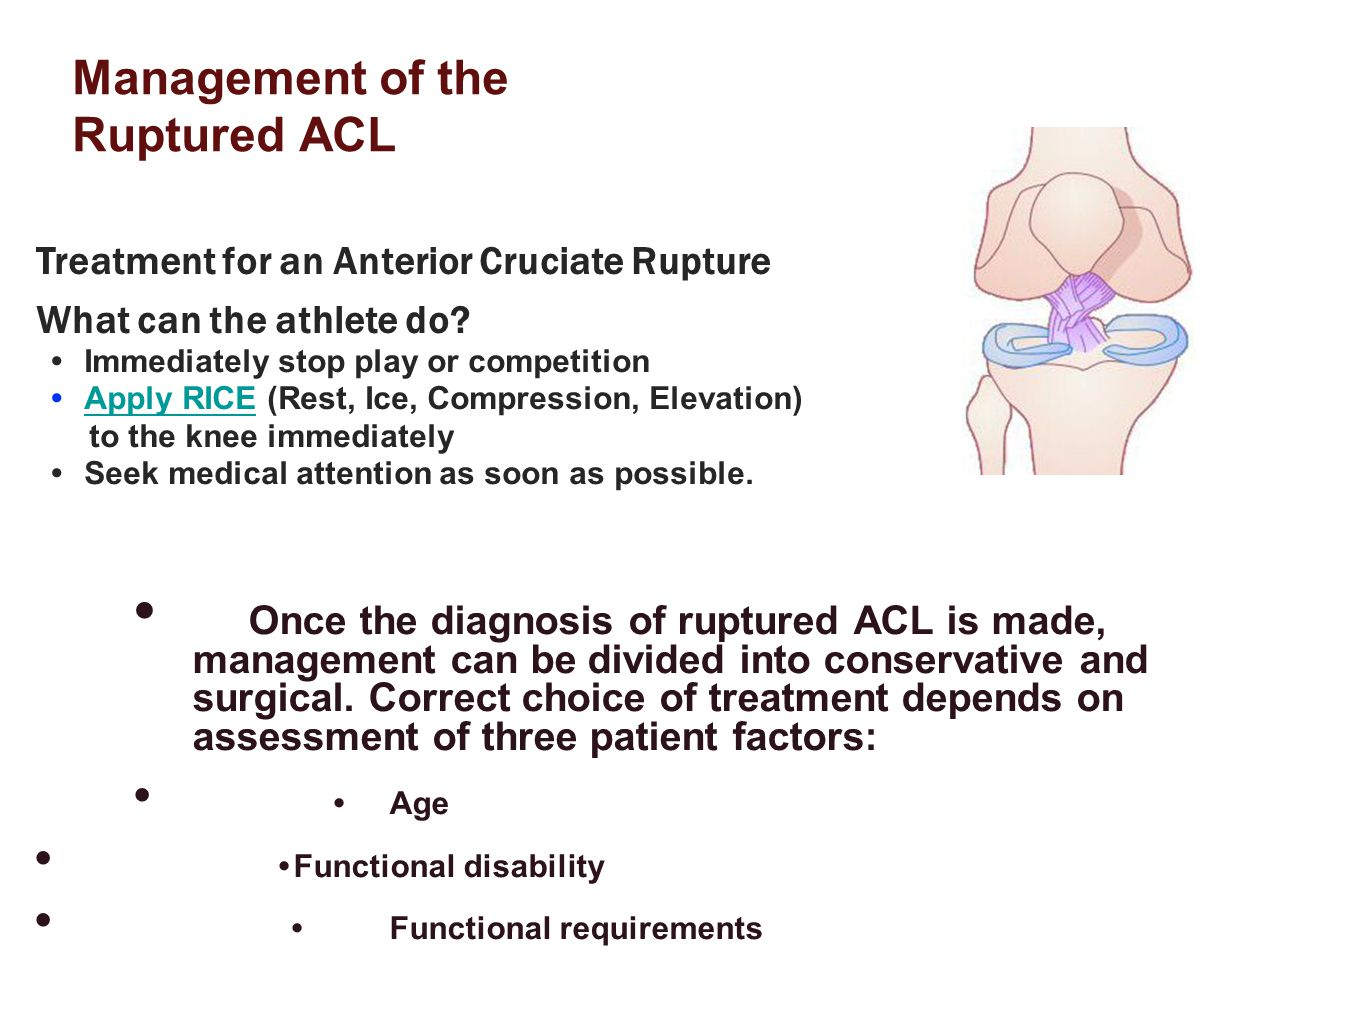 Management of the Ruptured ACL